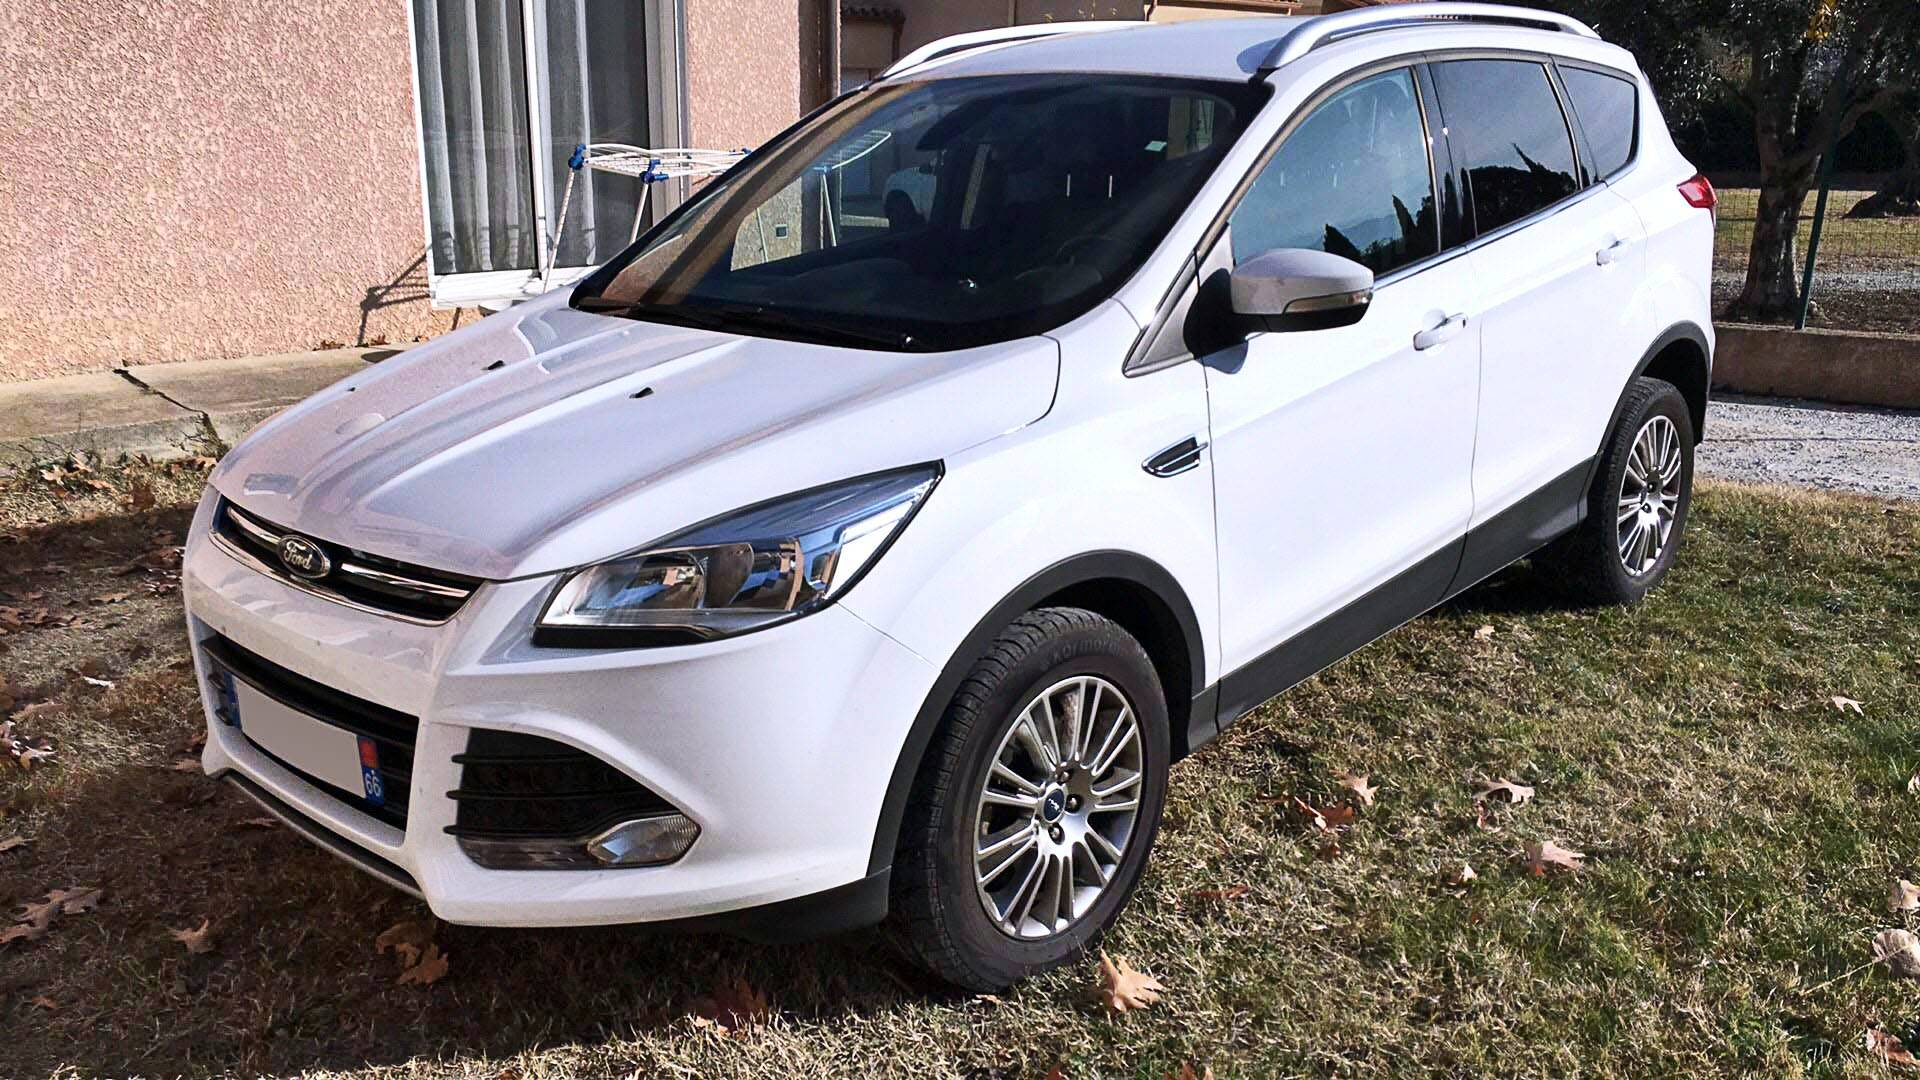 ford kuga d 39 occasion 2 0 tdci 140 titanium 2wd toulouges carizy. Black Bedroom Furniture Sets. Home Design Ideas